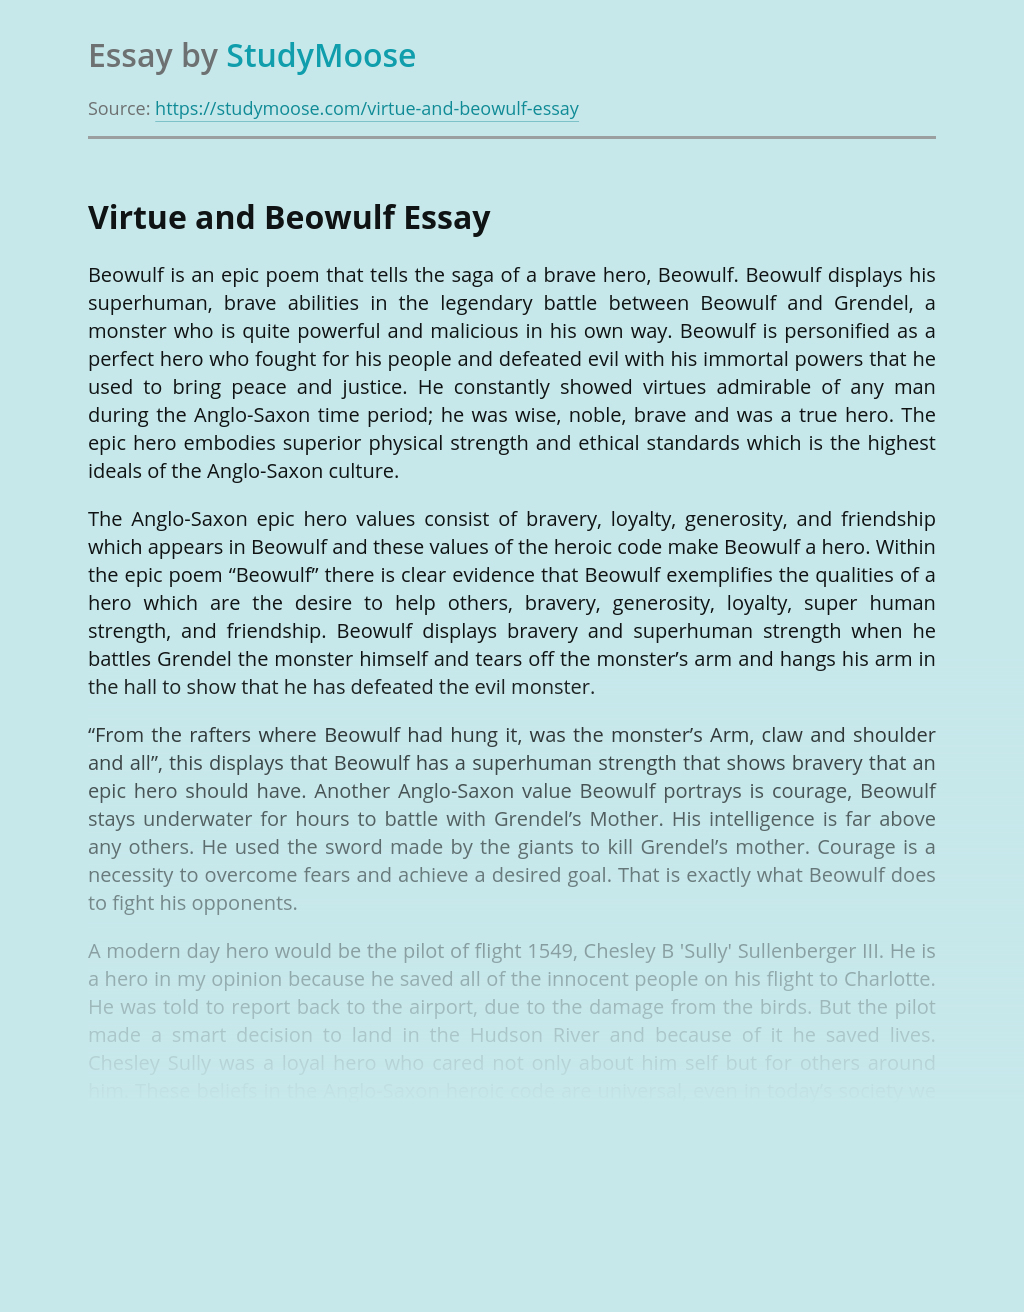 Virtue and Beowulf